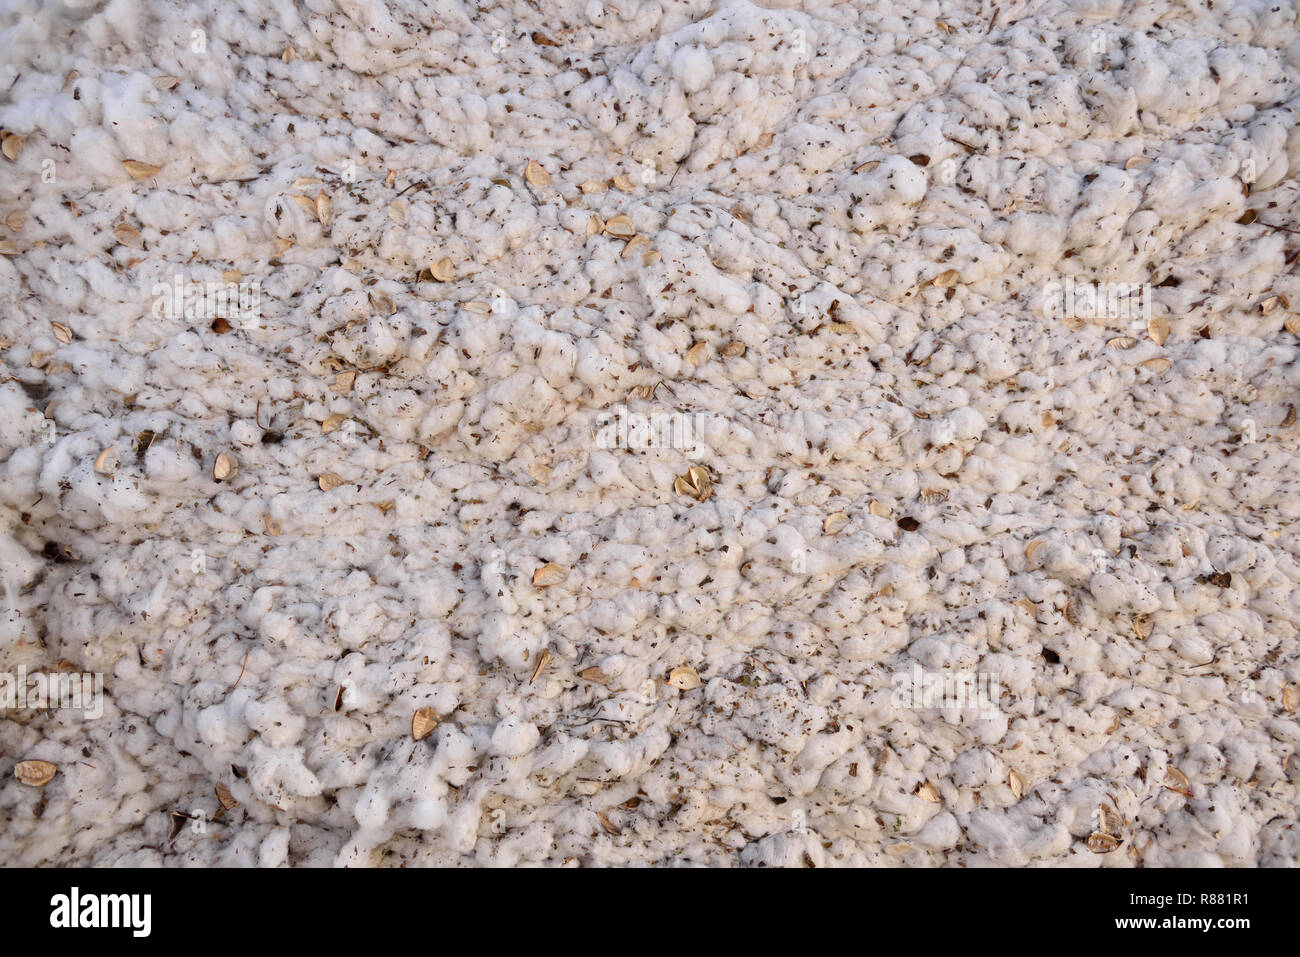 Freshly harvested bale of raw white cotton ready for processing in rural West Texas/ USA. - Stock Image